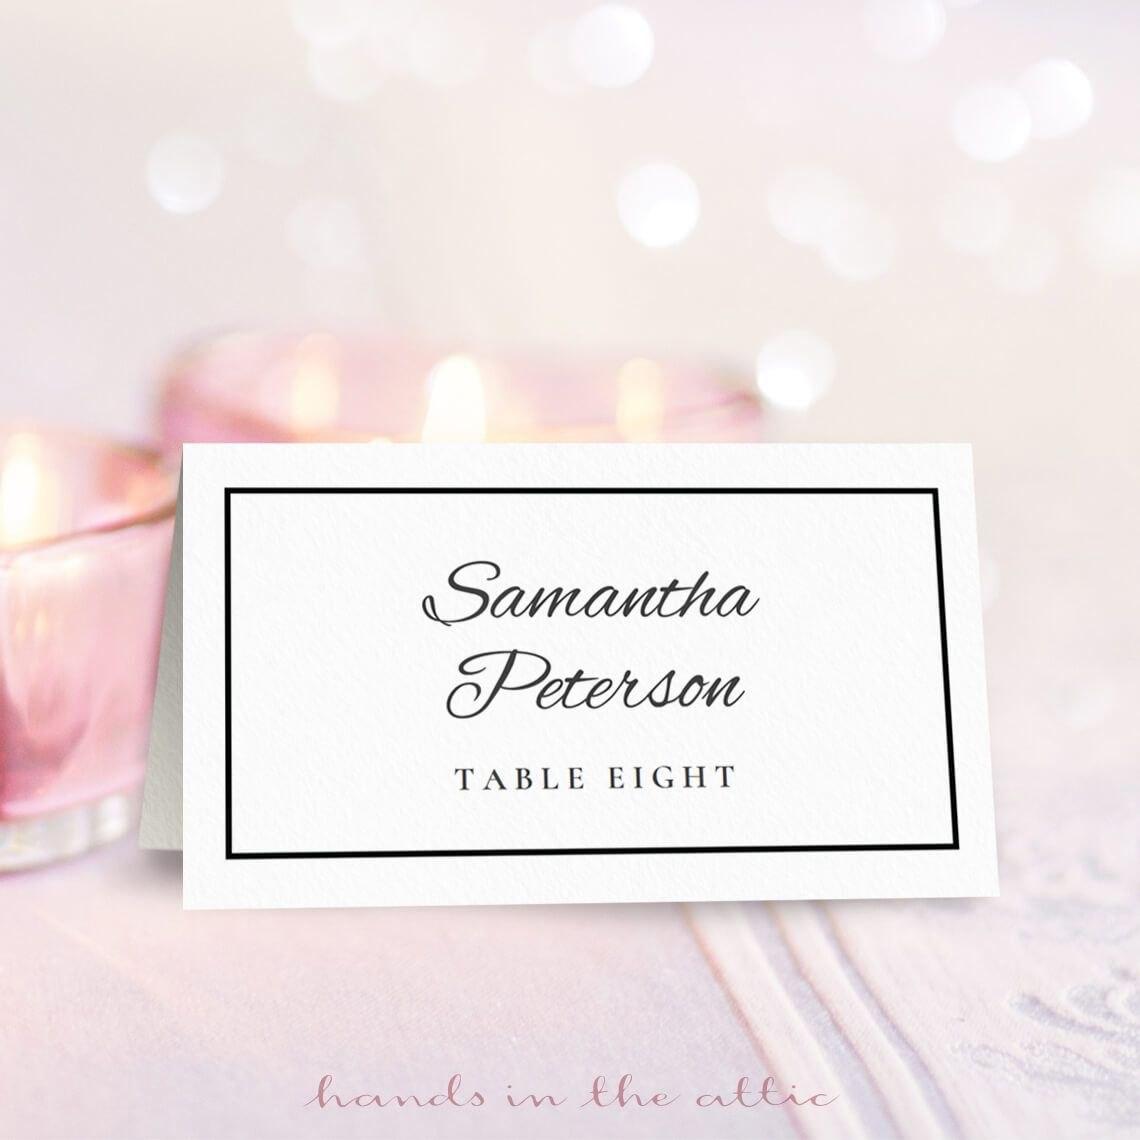 Wedding Place Card Template  Free On Handsintheattic  Free With Amscan Templates Place Cards